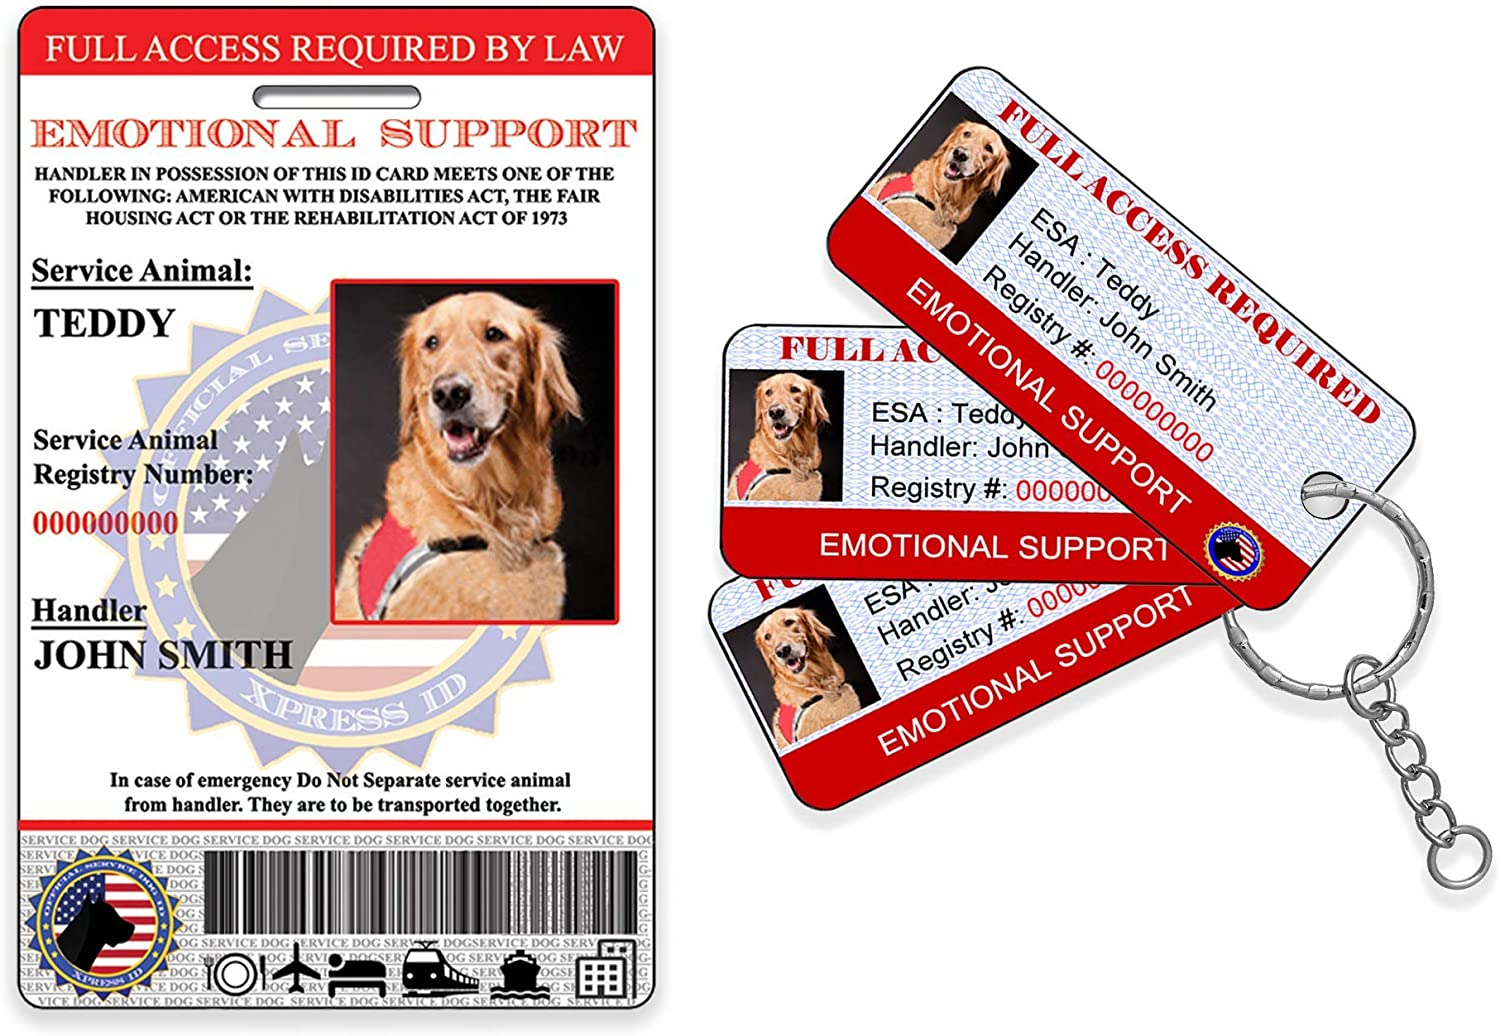 Custom Holographic Emotional Support Animal ID Card and 3 KeyTags | Registration to Service Animal Registry Included - QR Code Ready